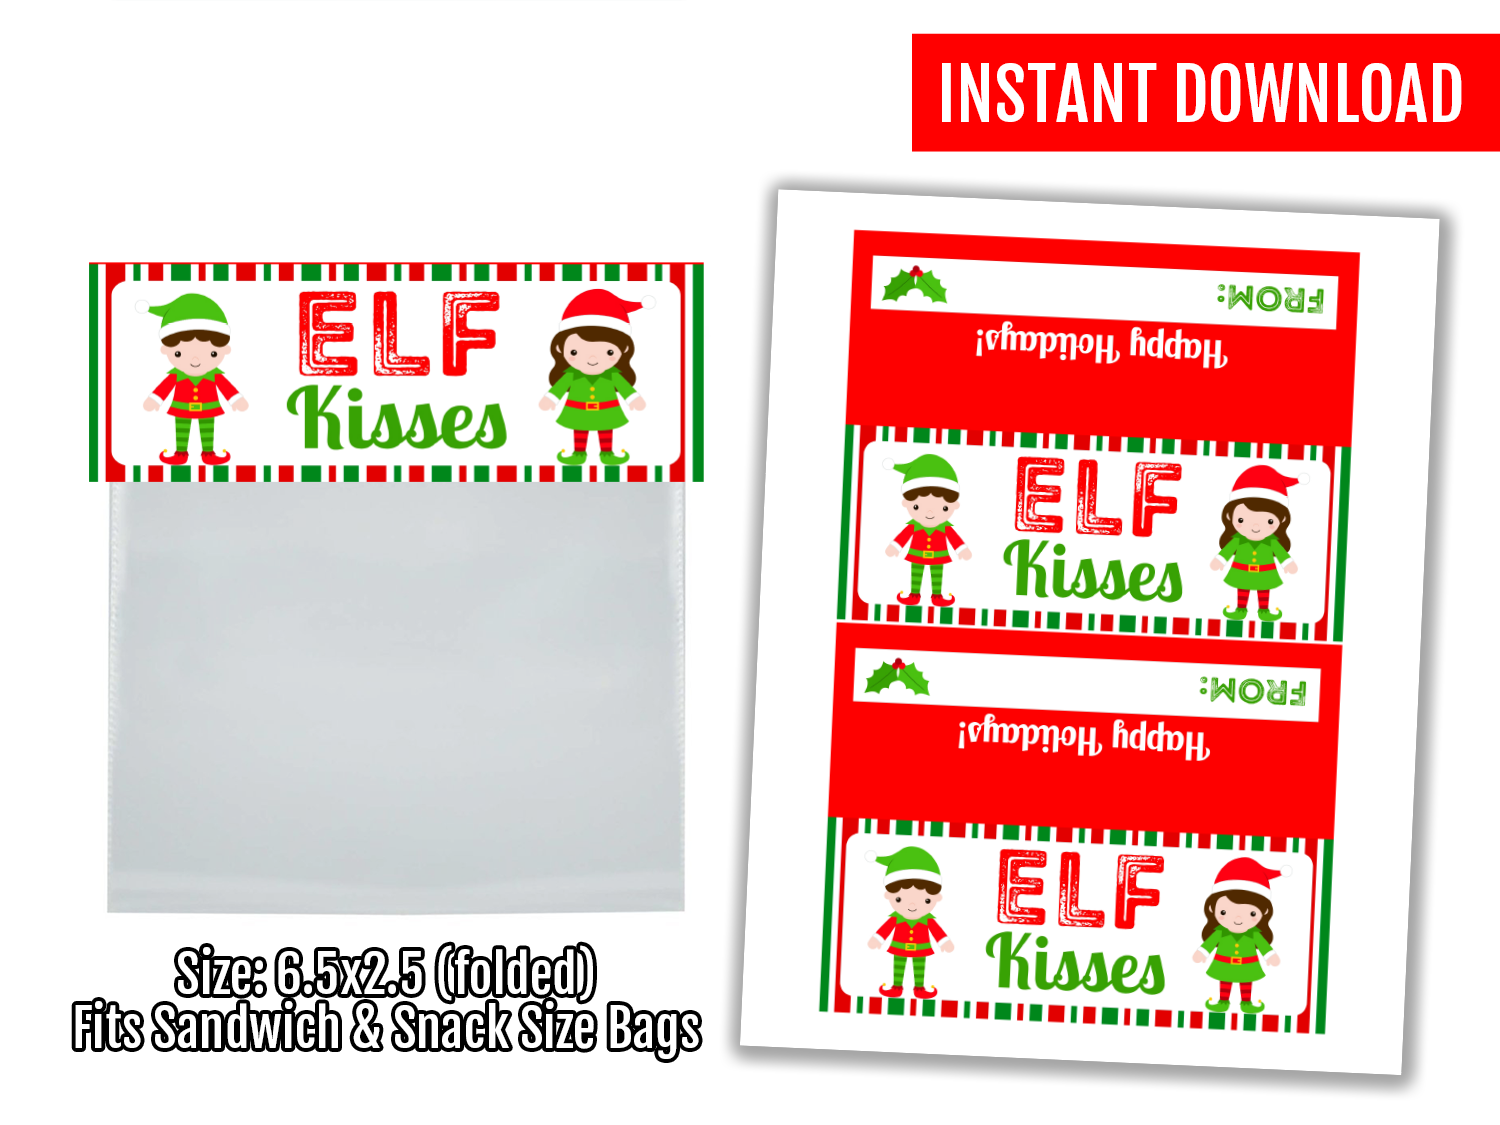 Elf Kisses Printable Treat Bag Topper, Student Exchange Gift Ideas, Instant Download